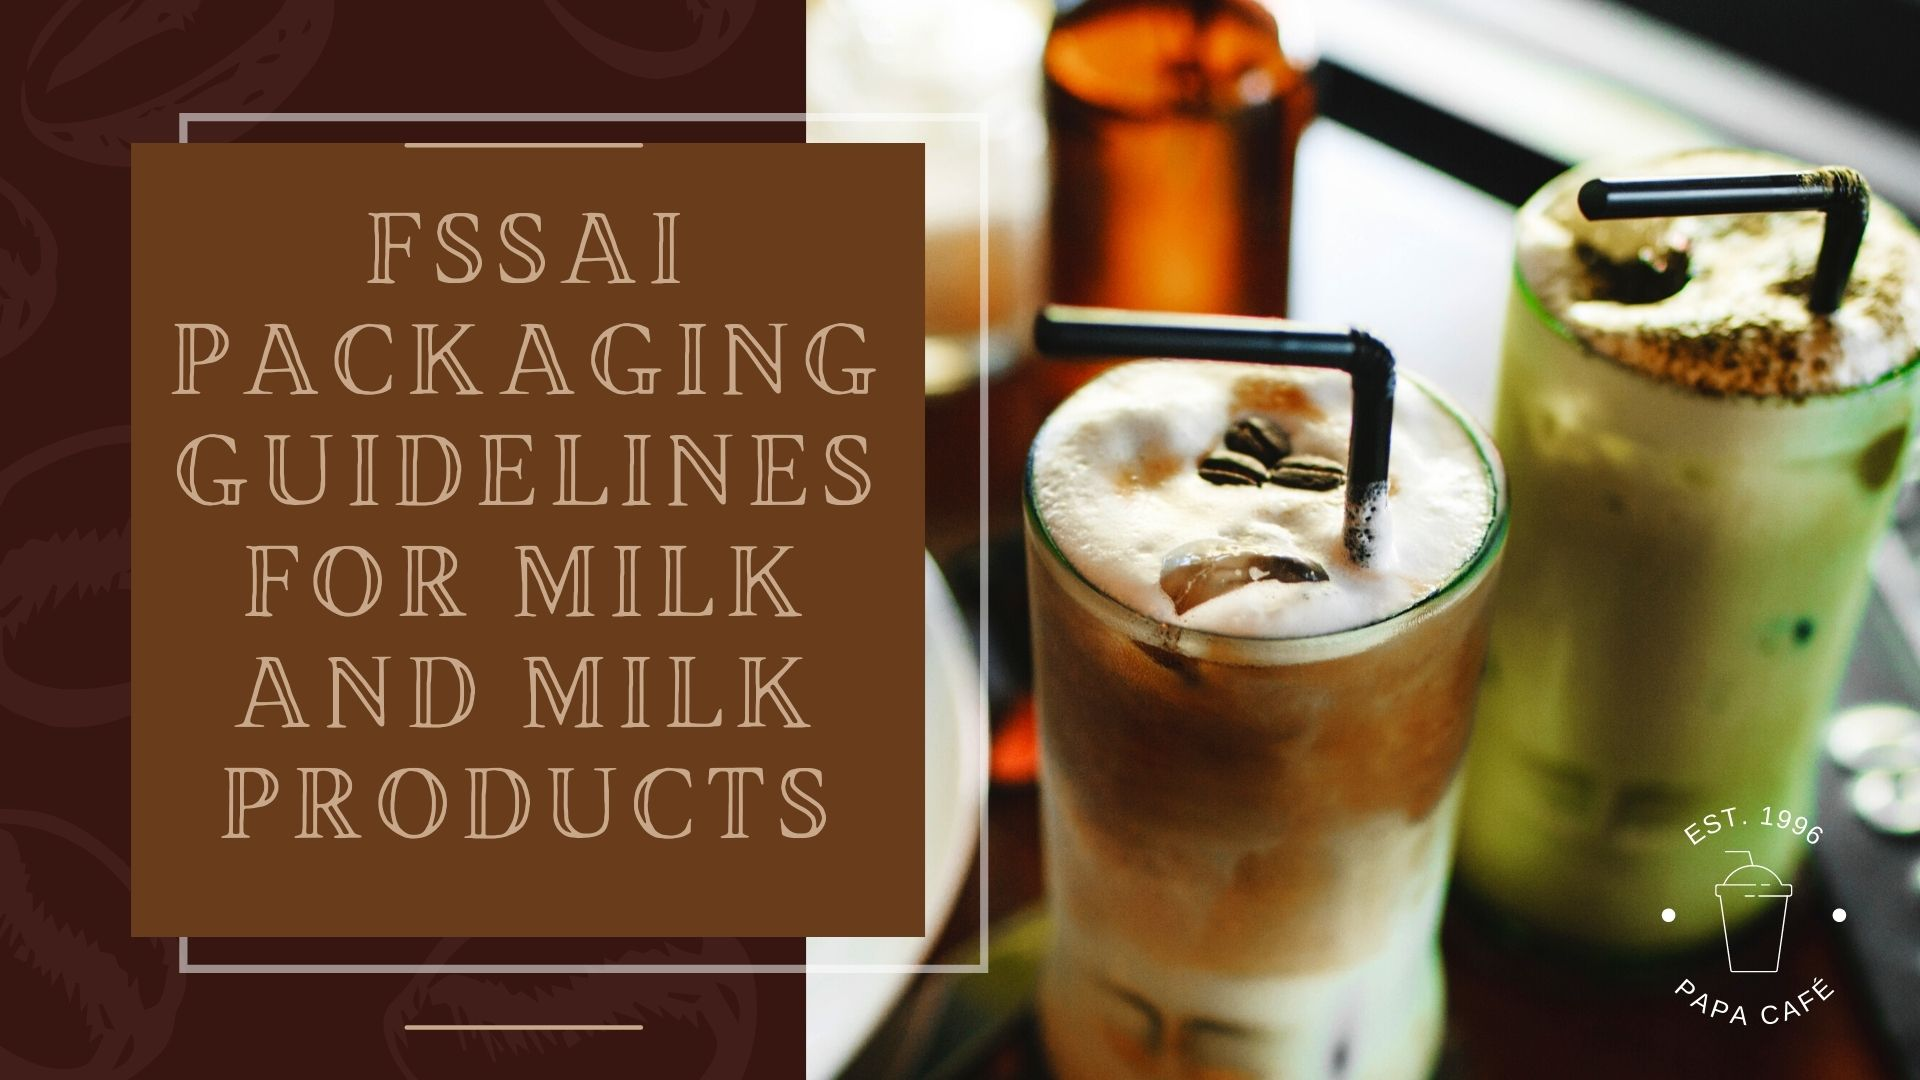 FSSAI Packaging Guidelines for Milk and Milk Products (1)